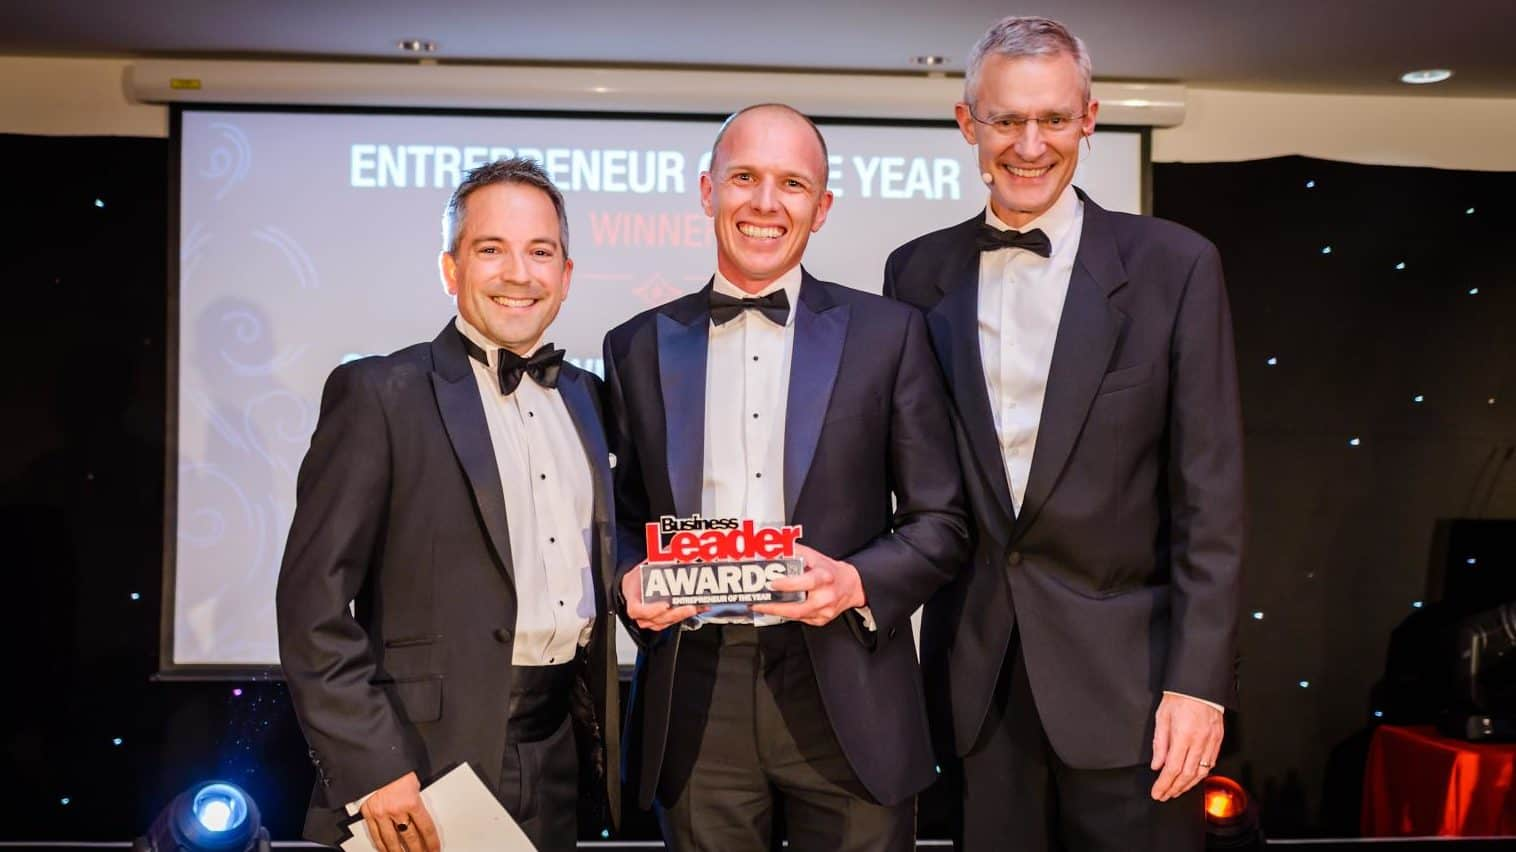 Simon Brown (centre) awarded entrepreneur of the year